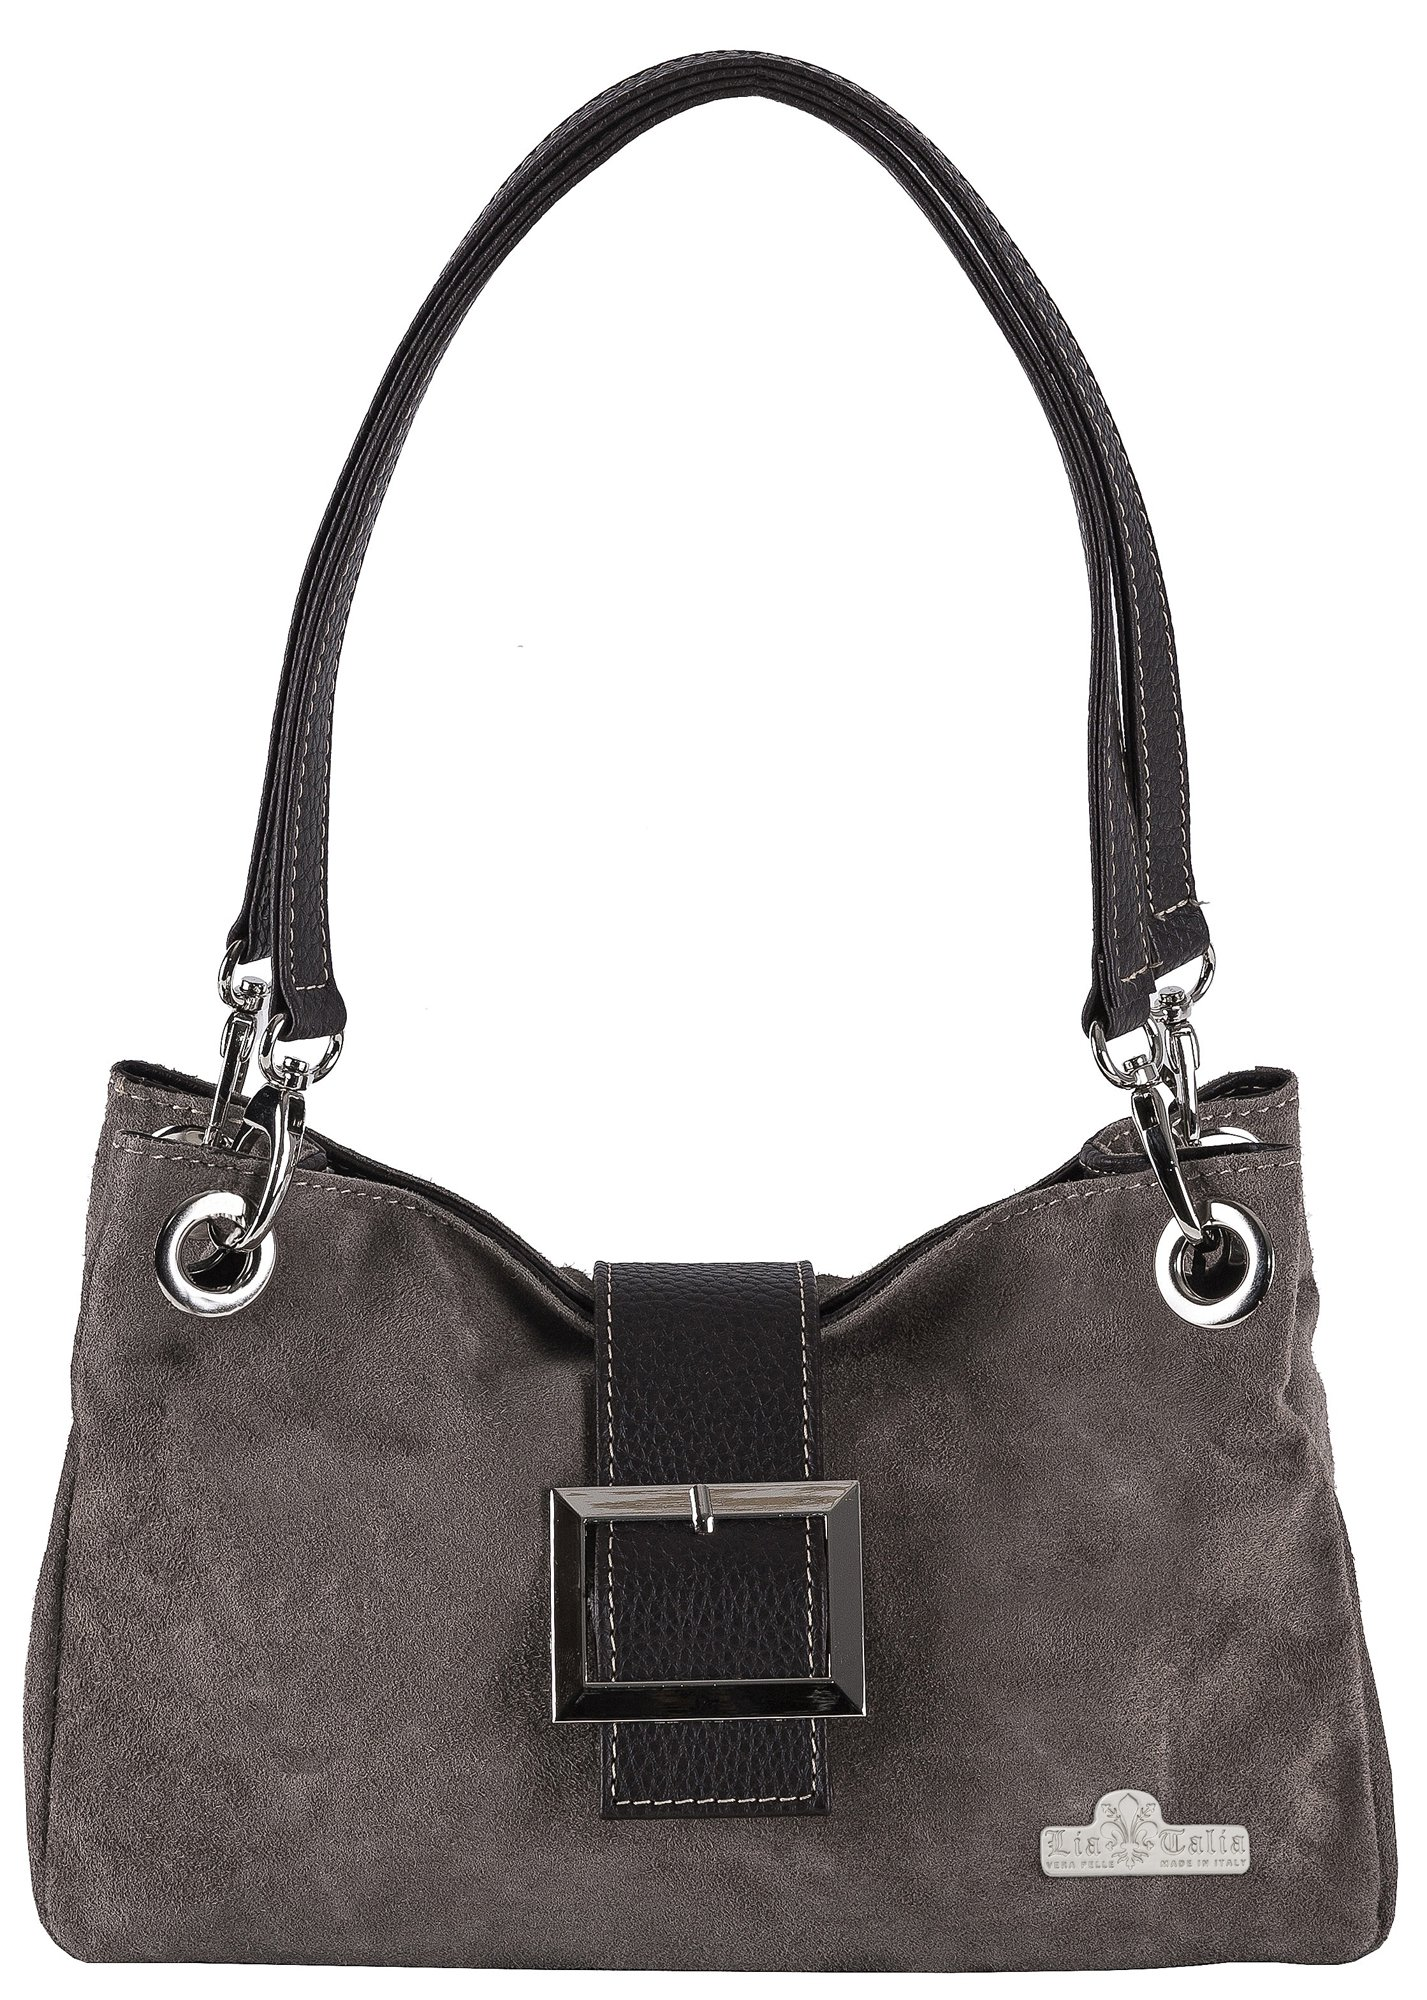 LiaTalia Real Italian Suede Small Leather Bag with Faux Trim Cotton Lining and a Protective Dust Storage Bag - Pixie [Deep Taupe - Brown Trim]